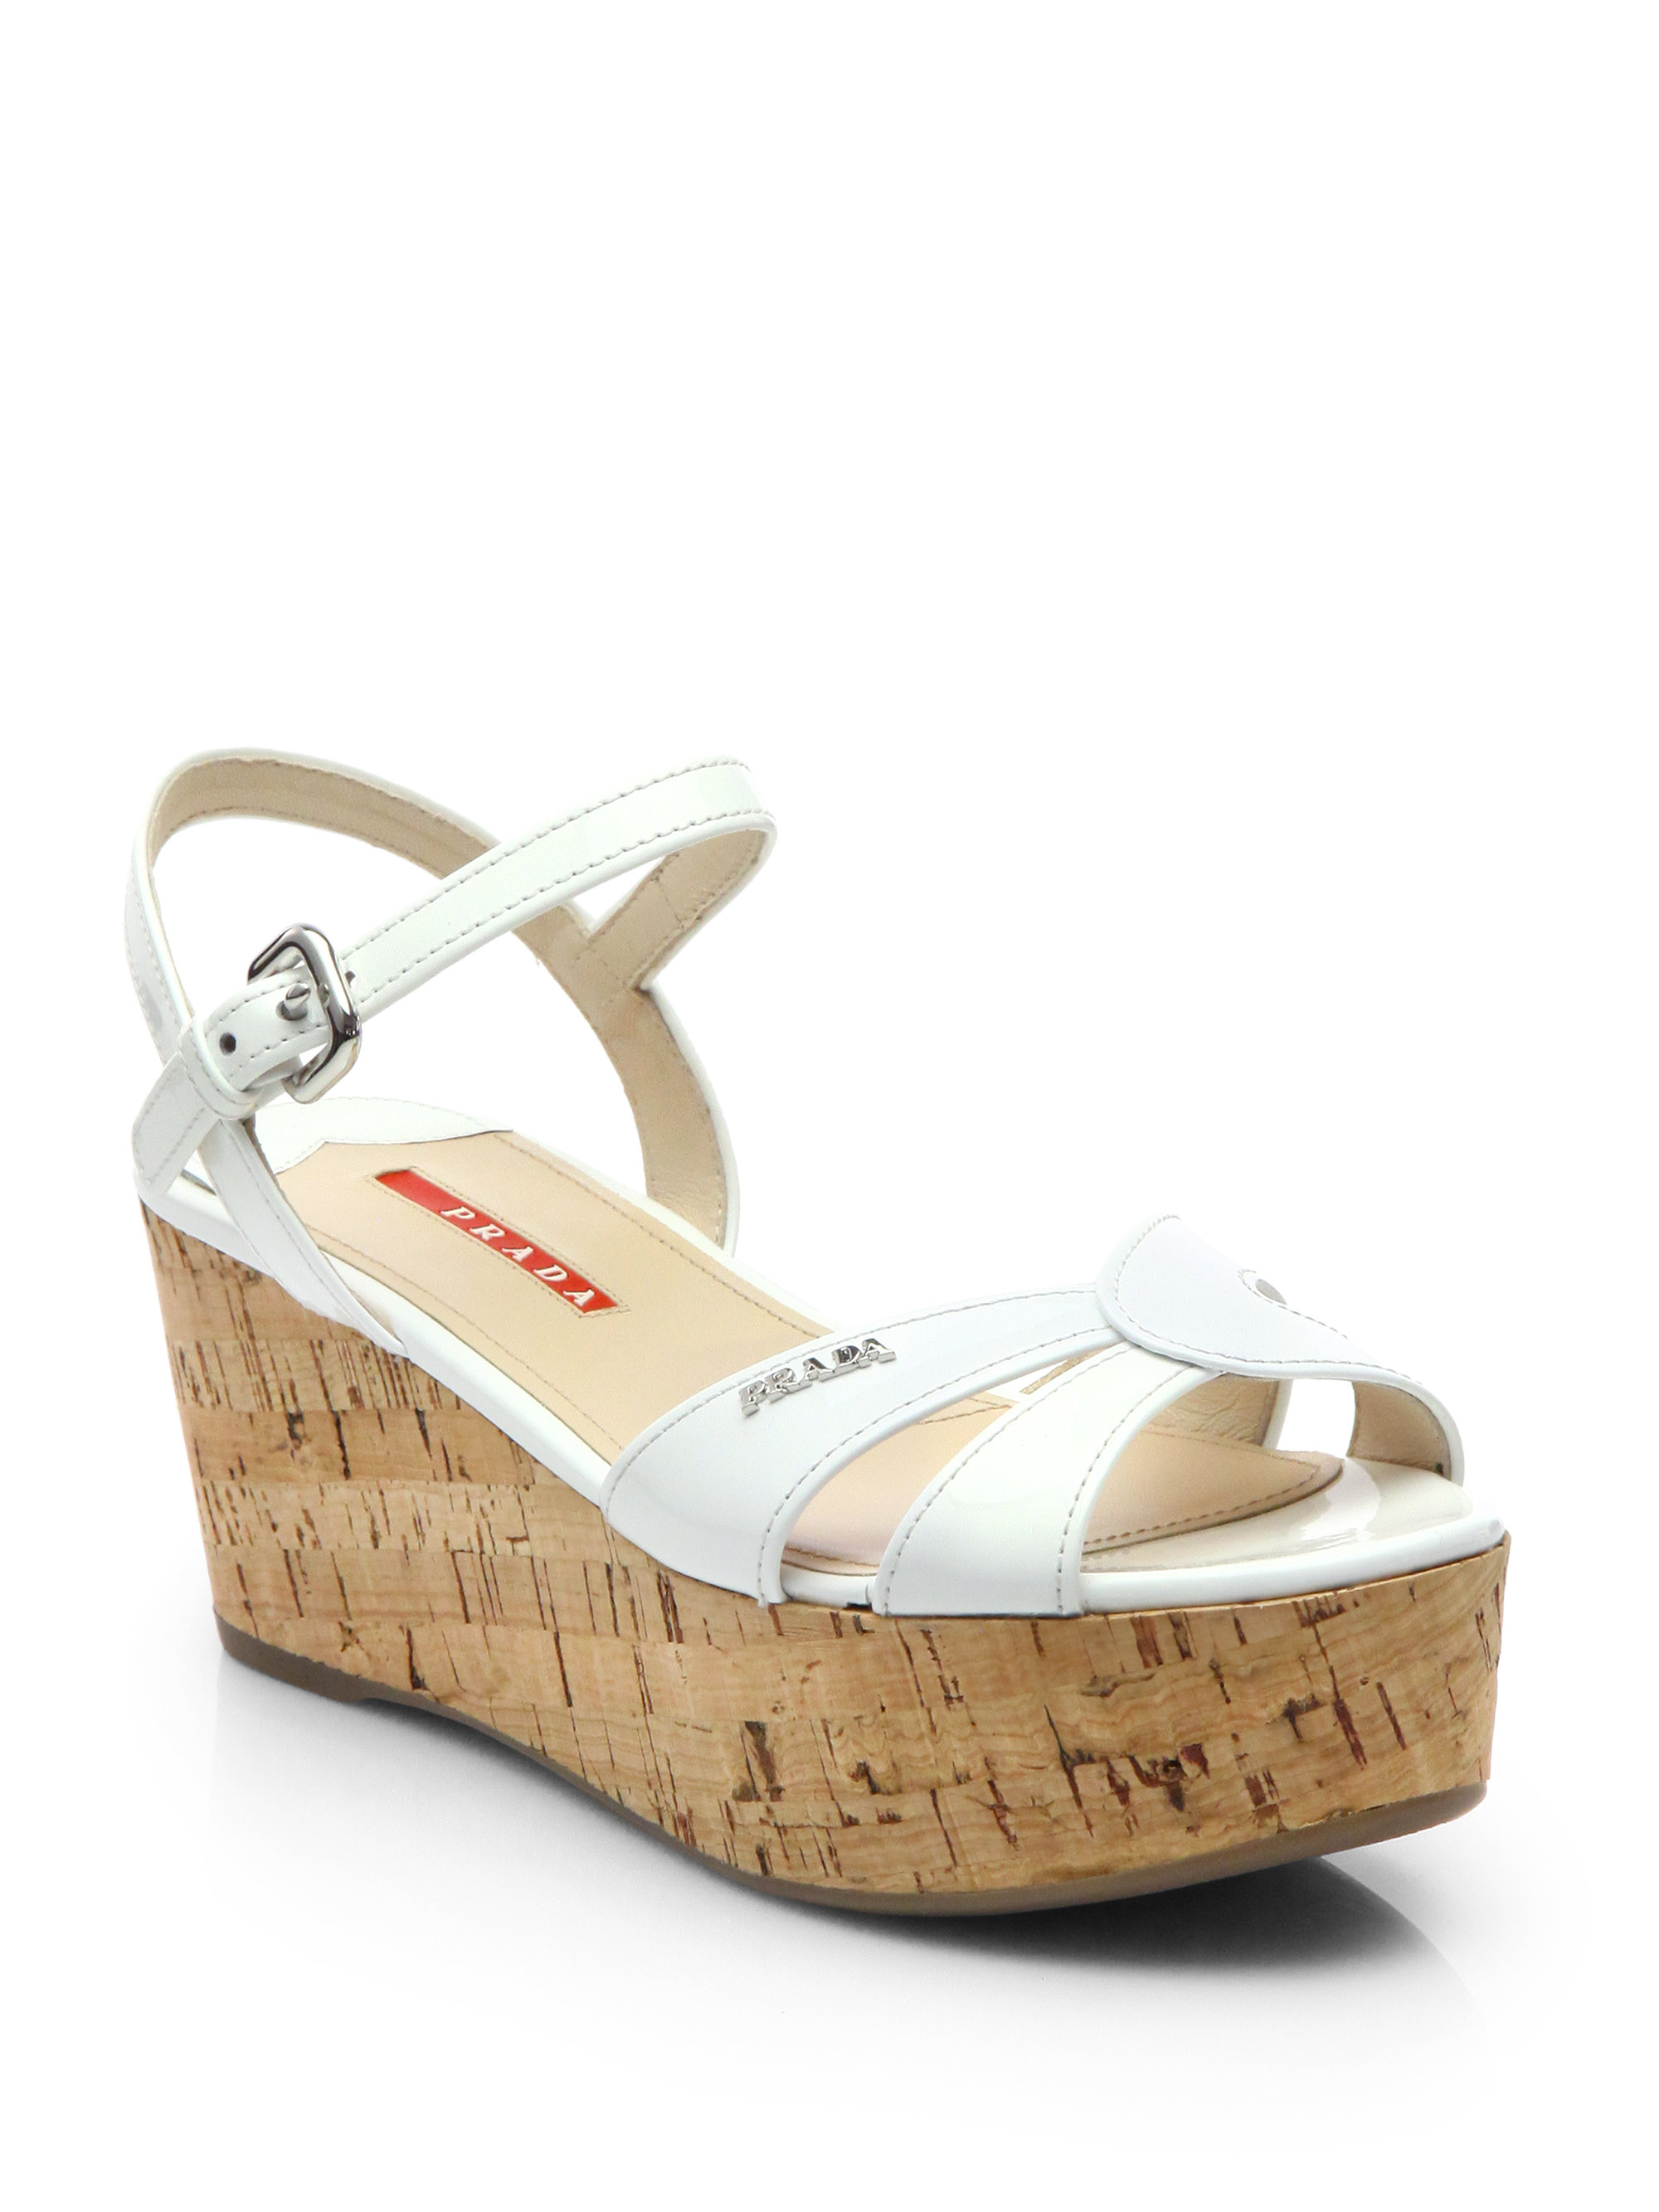 1159fc41cc7 Lyst - Prada Patent Leather Cork Platform Sandals in White